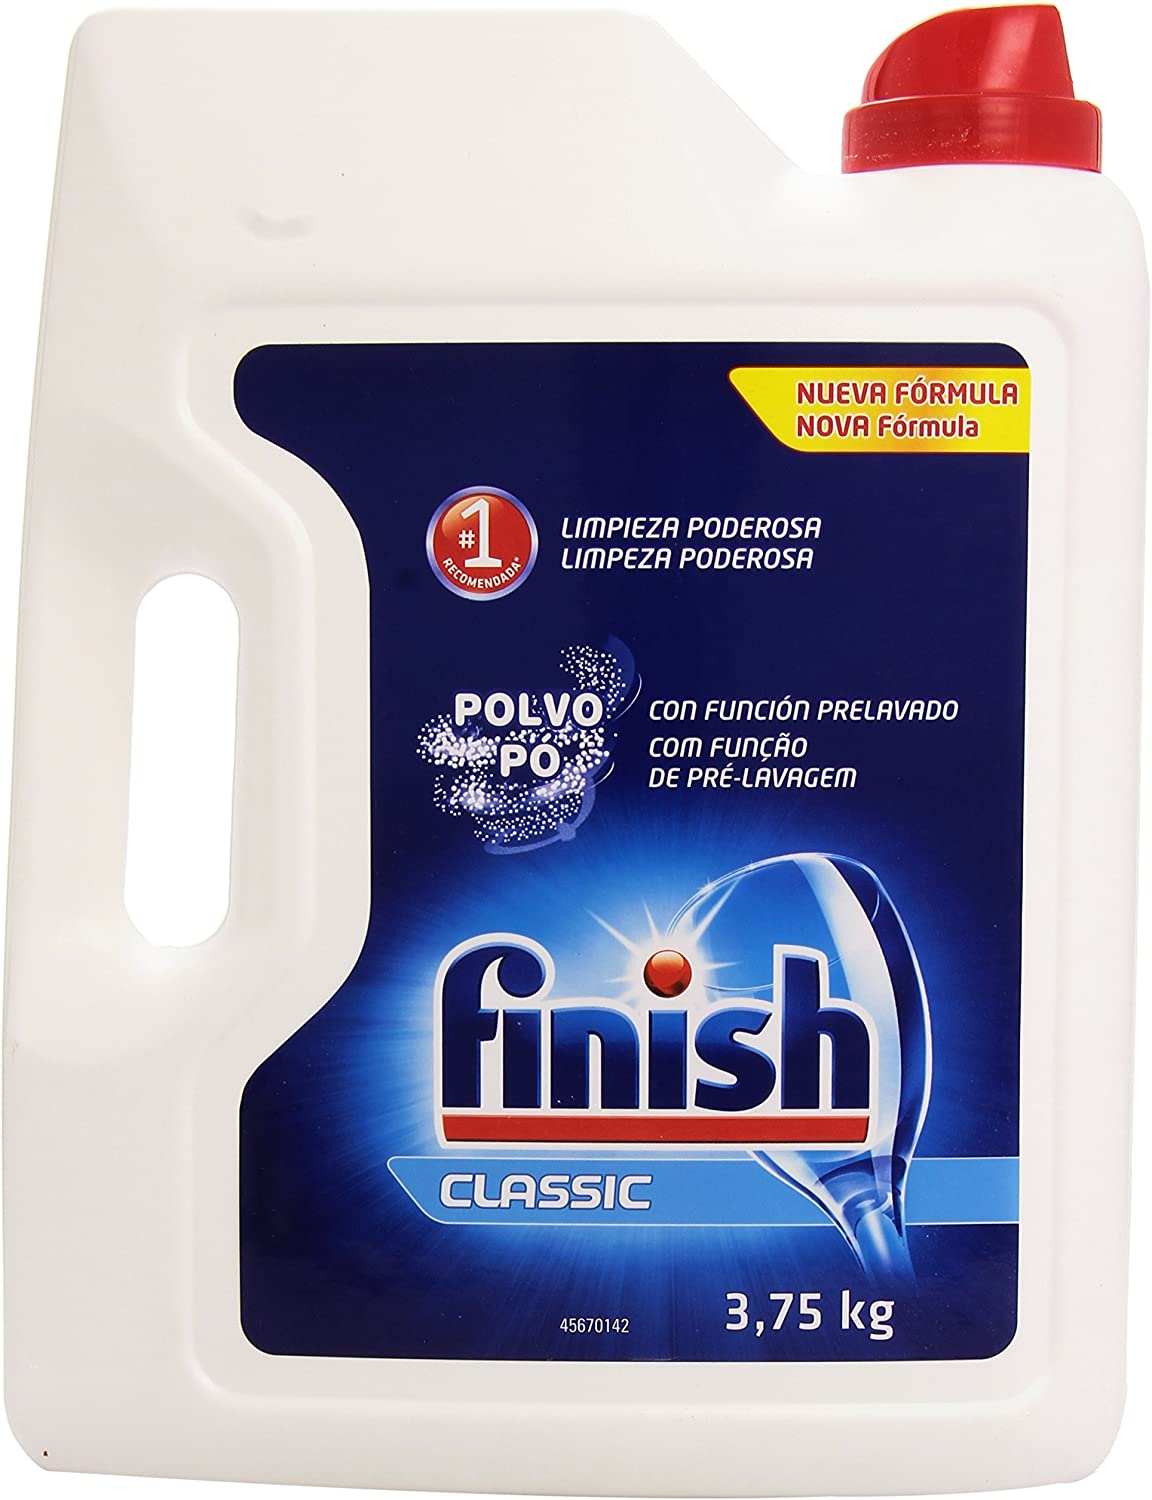 Finish Detergente Lavavajillas Polvo - 3,75 kg: Amazon.es: Amazon ...